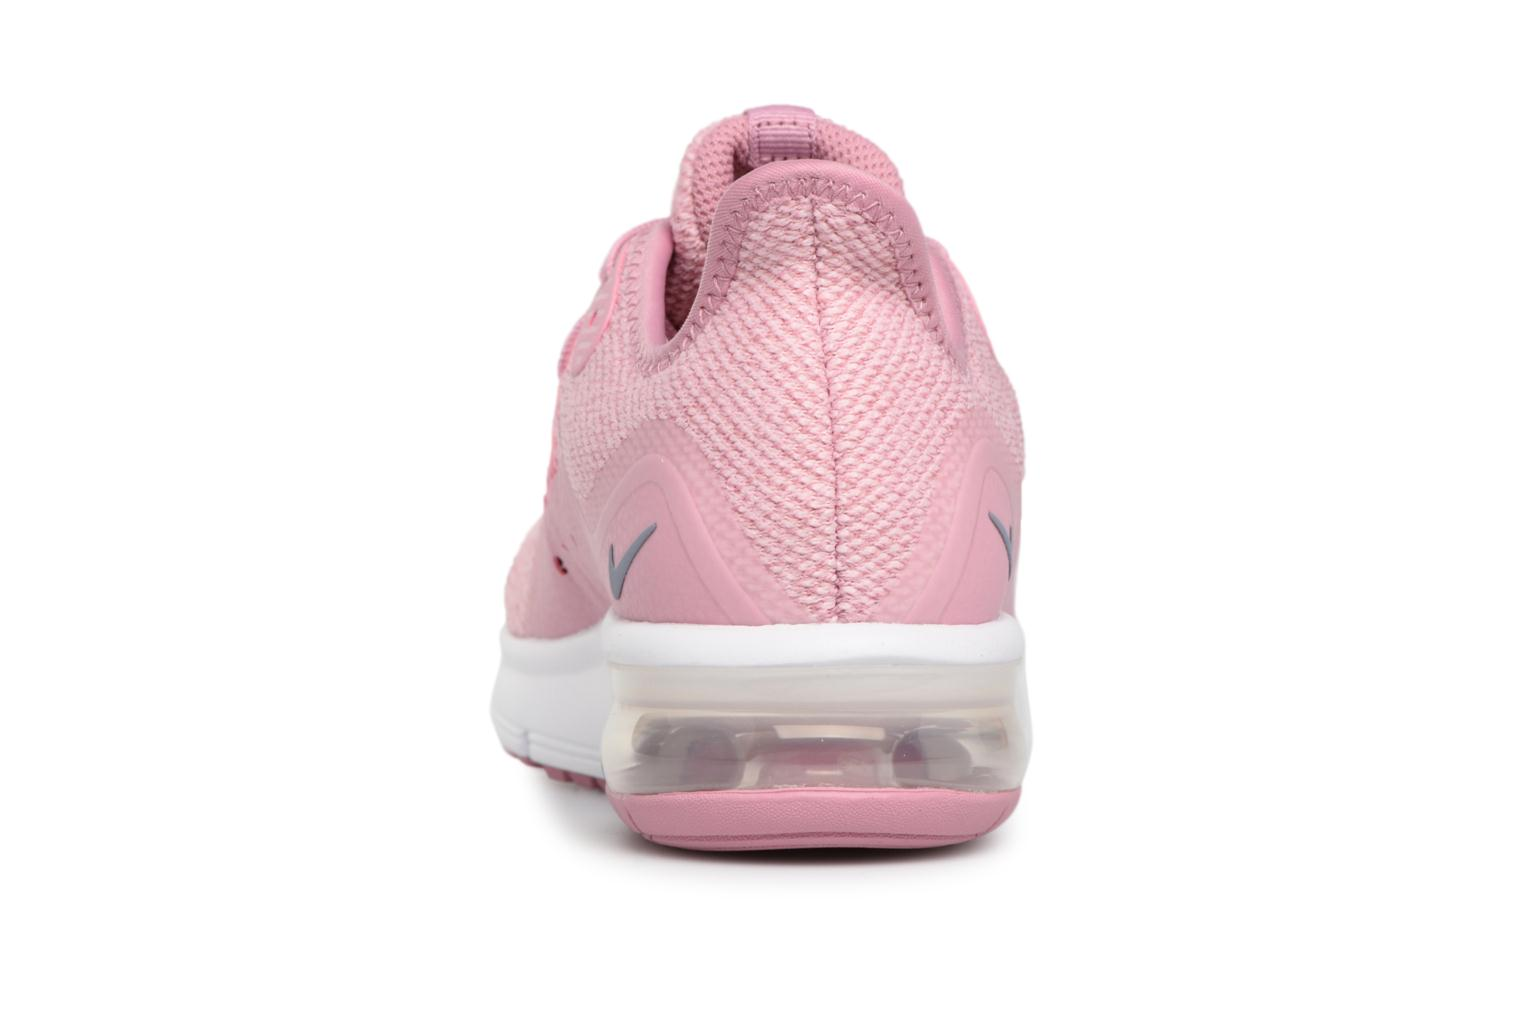 Slate Nike Ashen Pink GS Air Pink 3 Sequent Elemental White Max 4q48prwH